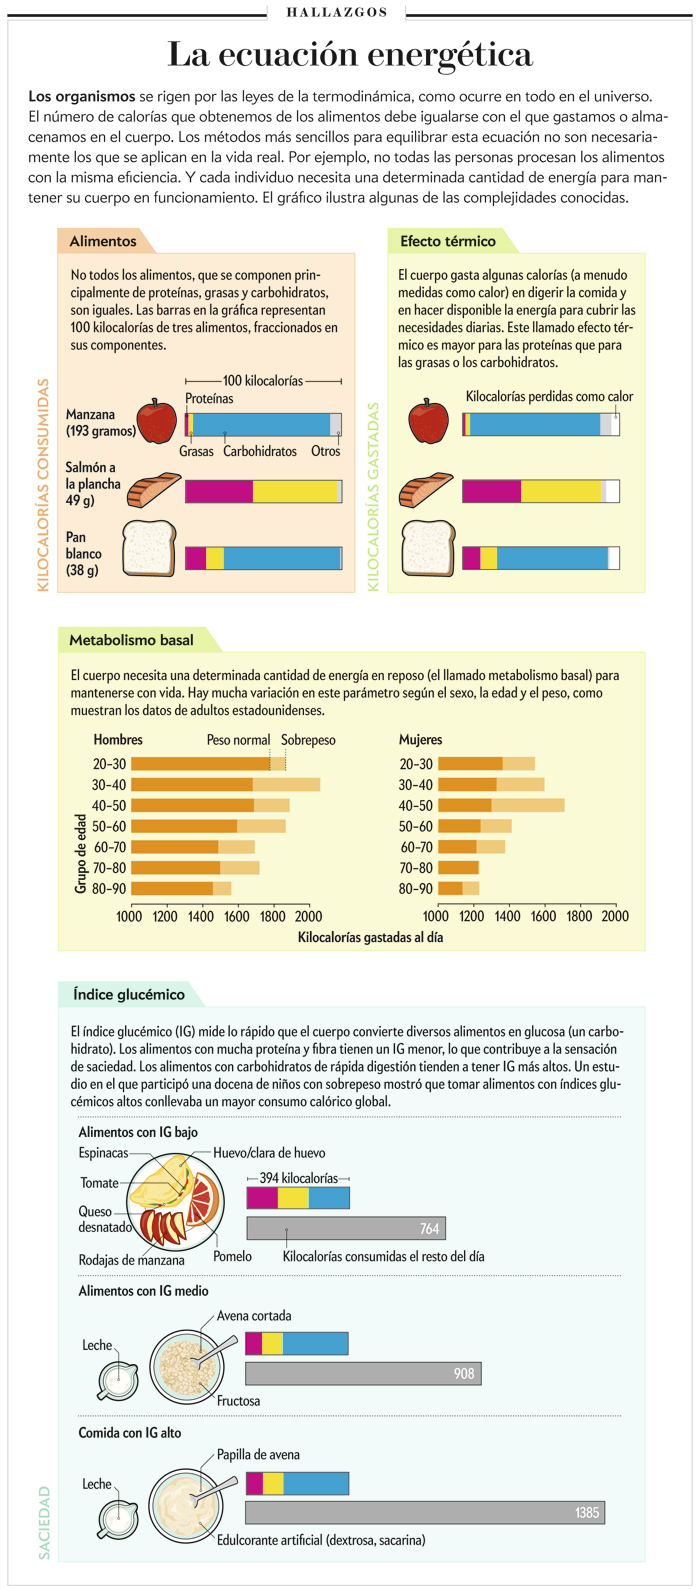 FUENTES: DEPARTAMENTO DE AGRICULTURA DE EE.UU. BASES DE DATOS DE COMPOSICIÓN DE ALIMENTOS (<em>datos de alimentos</em>); «HIGH-PROTEIN WEIGHT-LOSS DIETS: ARE THEY SAFE AND DO THEY WORK? A REVIEW OF THE EXPERIMENTAL AND EPIDEMIOLOGIC DATA», POR JULIE EISENSTEIN ET AL., EN <em>NUTRITION REVIEWS</em>, VOL. 60, N.º 7, JULIO DE 2002 (<em>datos del efecto térmico</em>); <em>HUMAN ENERGY REQUIREMENTS: REPORT OF A JOINT FAO/WHO/UNU EXPERT CONSULTATION</em>. ORGANIZACIÓN MUNDIAL DE LA SALUD, FAO Y UNIVERSIDAD DE LAS NACIONES UNIDAS, 2001 (<em>datos del metabolismo basal</em>); «HIGH GLYCEMIC INDEX FOODS, OVEREATING, AND OBESITY», POR DAVID S. LUDWIG ET AL. EN <em>PEDIATRICS</em>, VOL. 103, N.º 3, MARZO DE 1999 (<em>datos del índice glucémico</em>); BROWN BIRD DESIGN (<em>ilustraciones</em>), AMANDA MONTAÑEZ (<em>gráficas</em>)